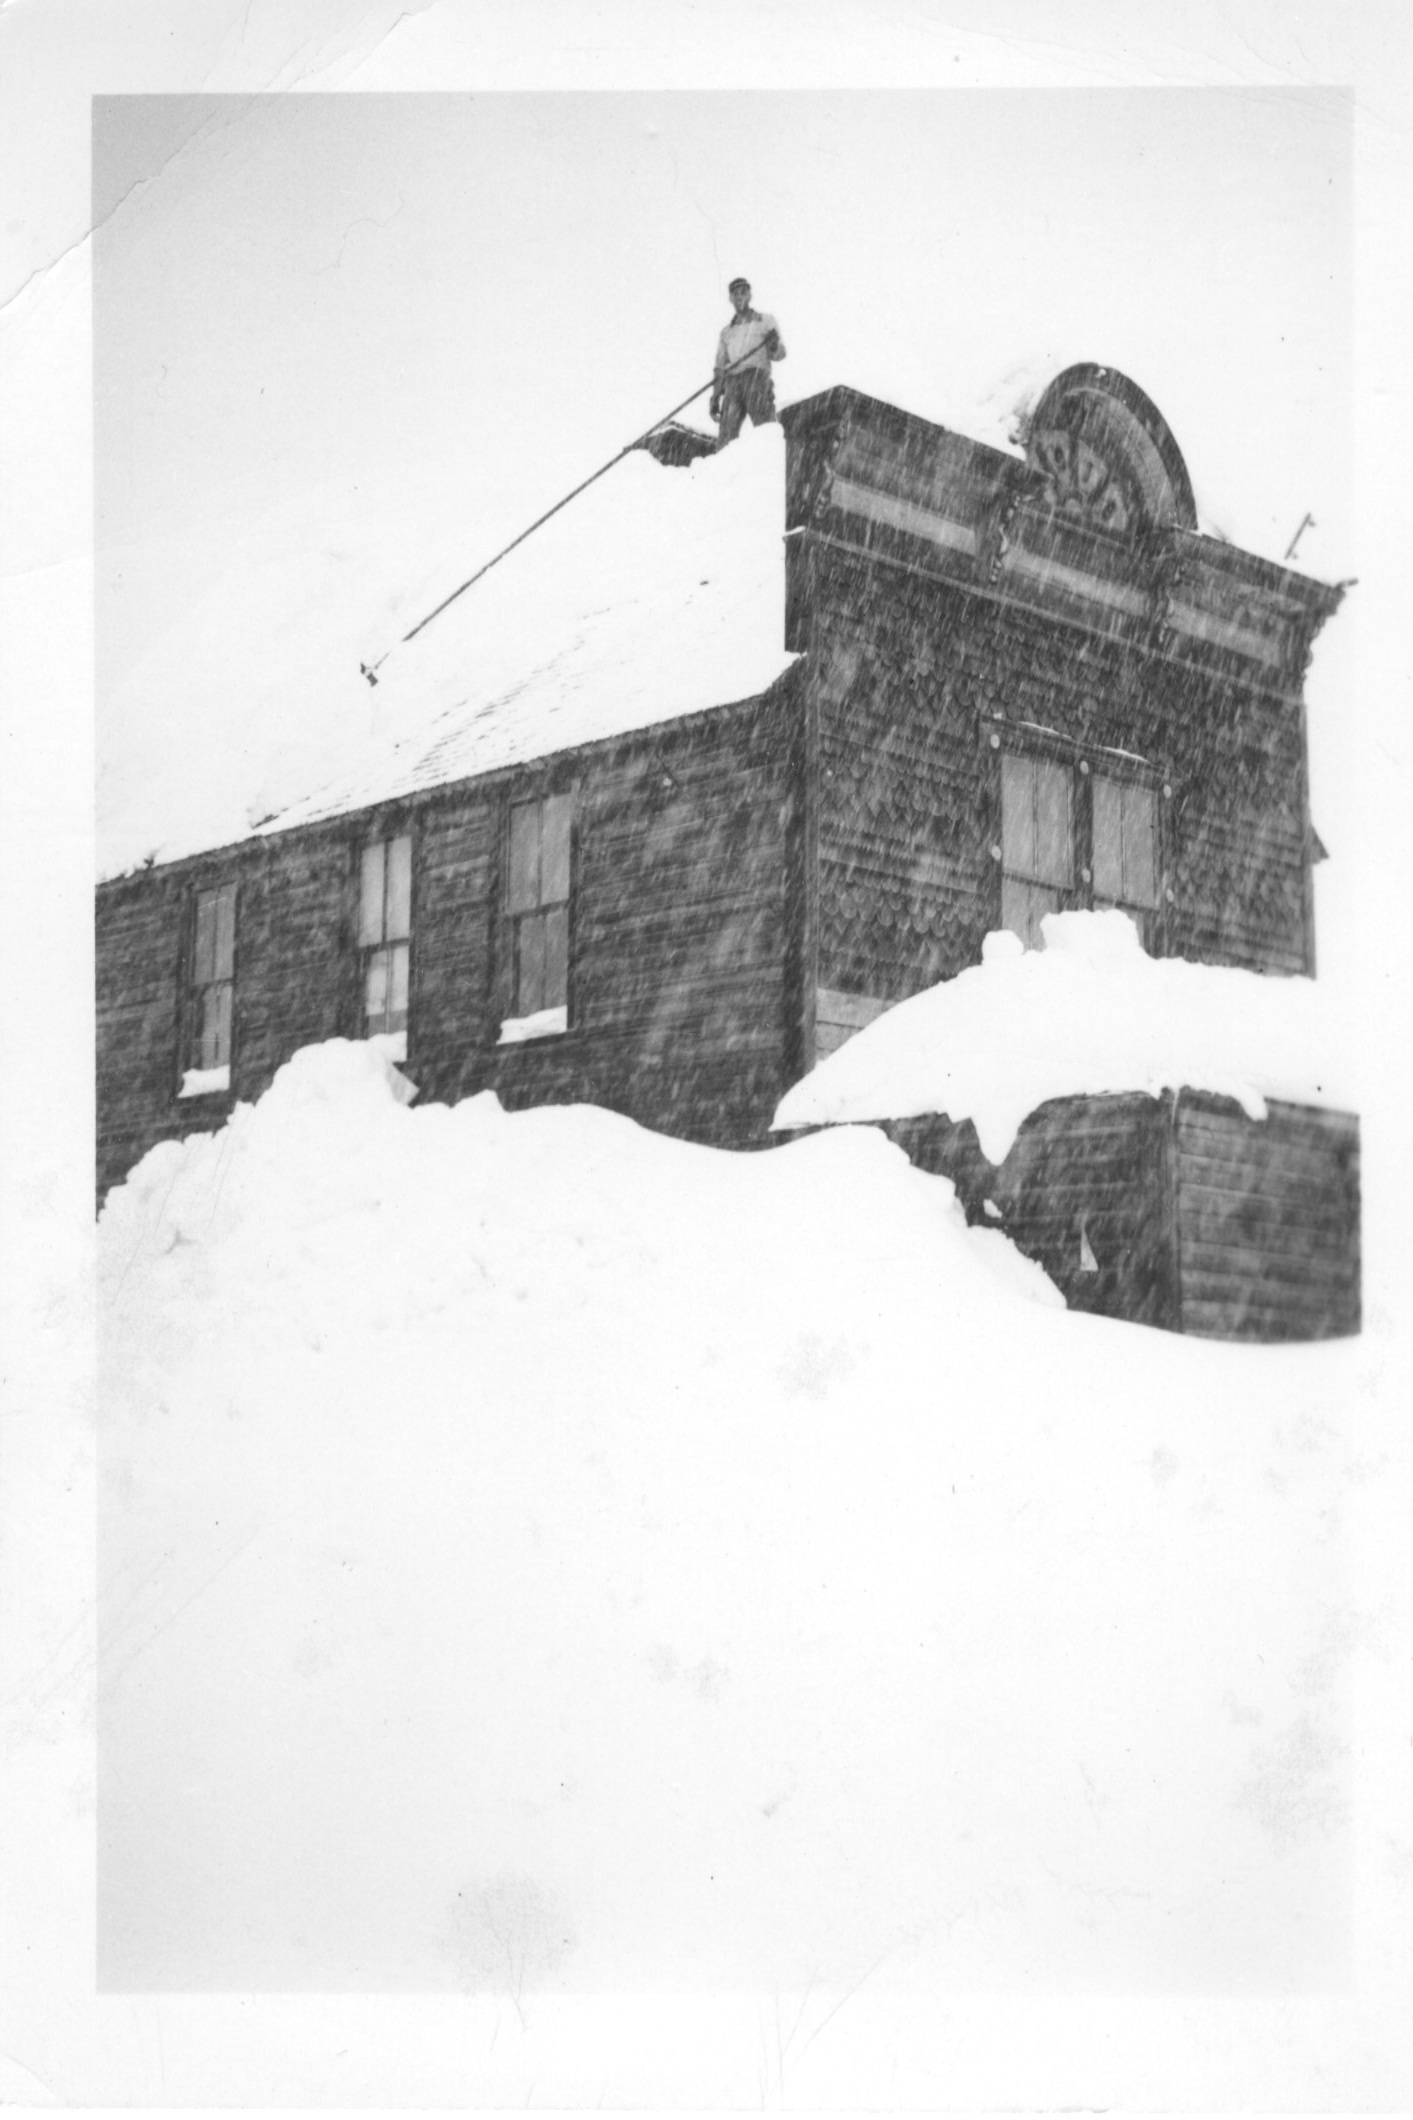 - In this photo of Crested Butte, taken while the mines were still active, snow obscures the windows of the first floor. Isabel and her family often had similar conditions during winter, when they had to look out the second floor window to see if the sun was shining. Image provided by the Crested Butte Mountain Heritage Museum.